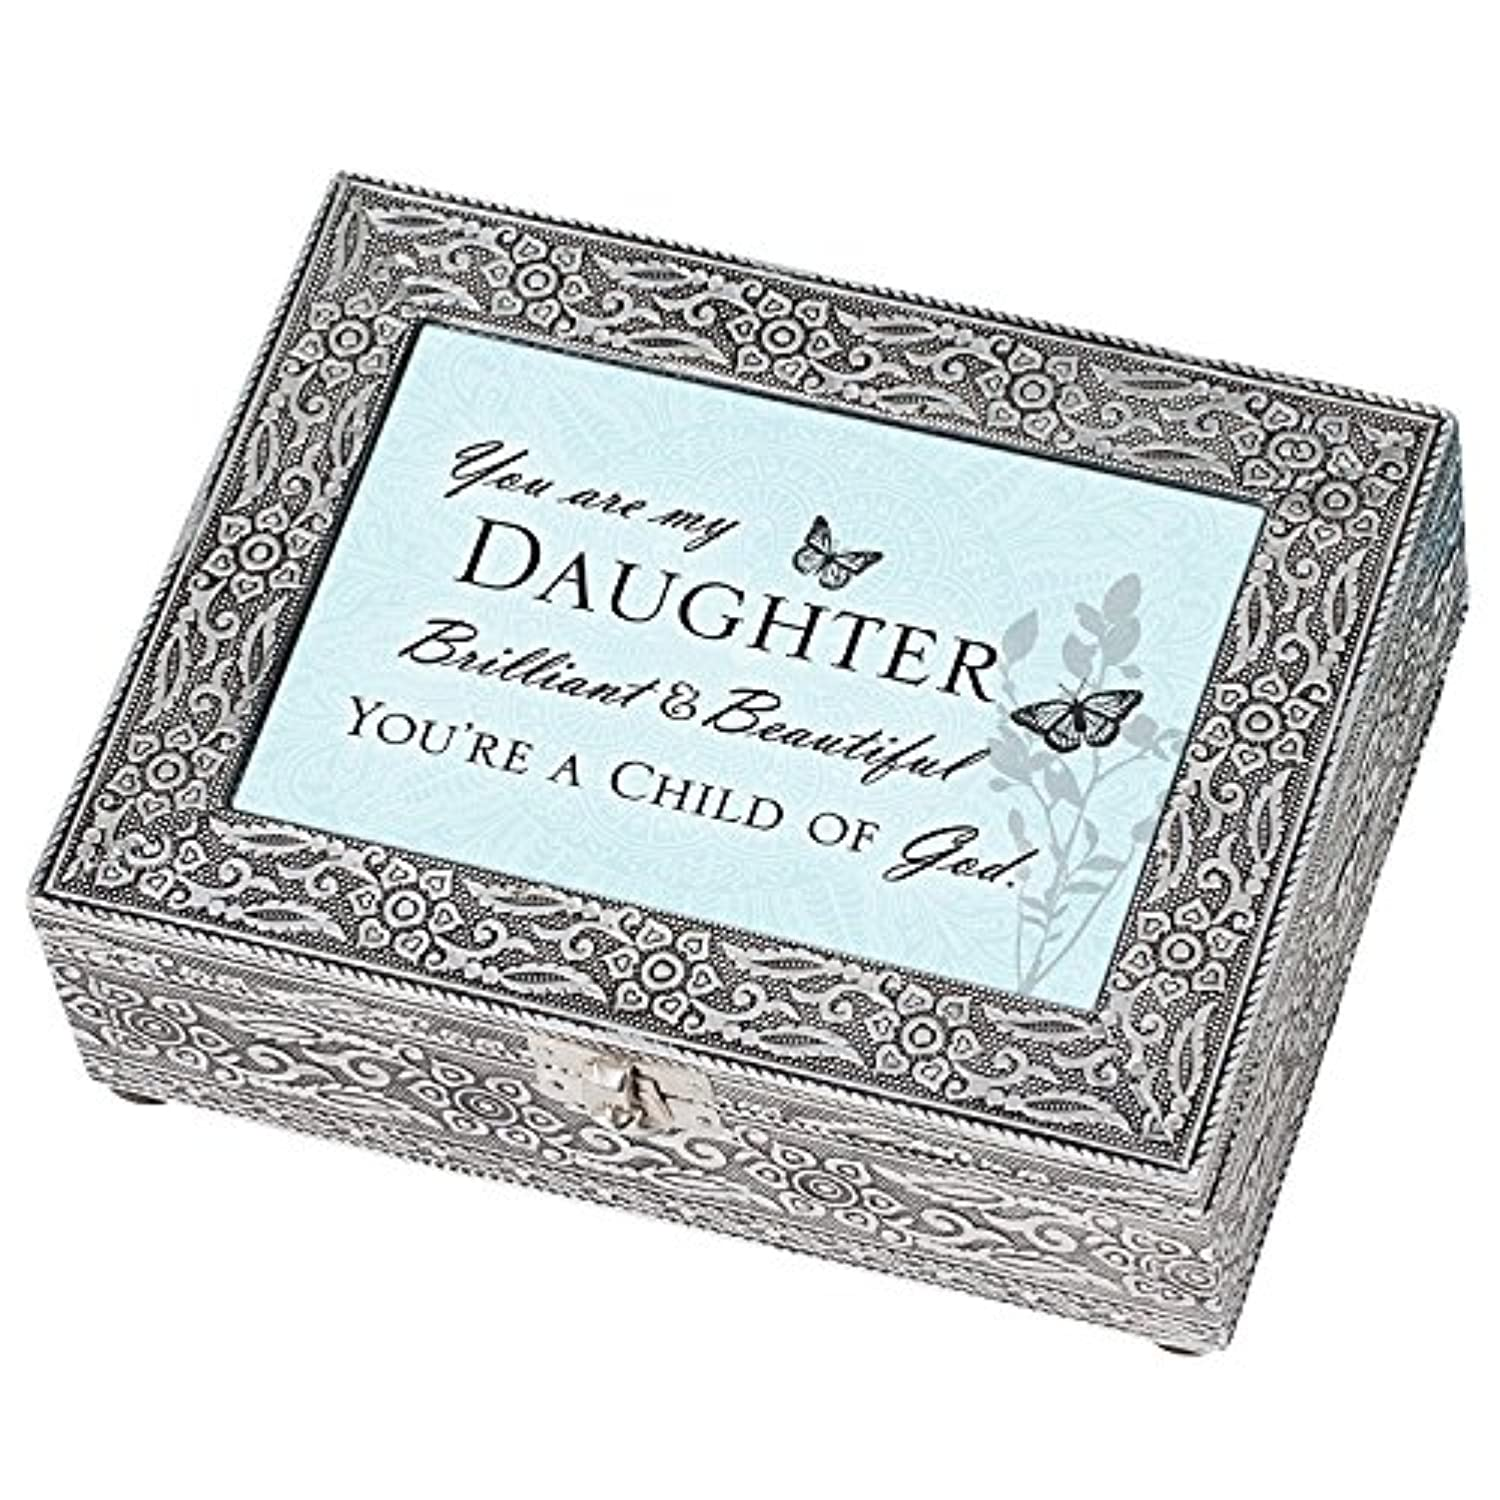 Daughter Beautiful Child of God Silver Stamped Metal Jewellery Music Box Plays Tune Amazing Grace